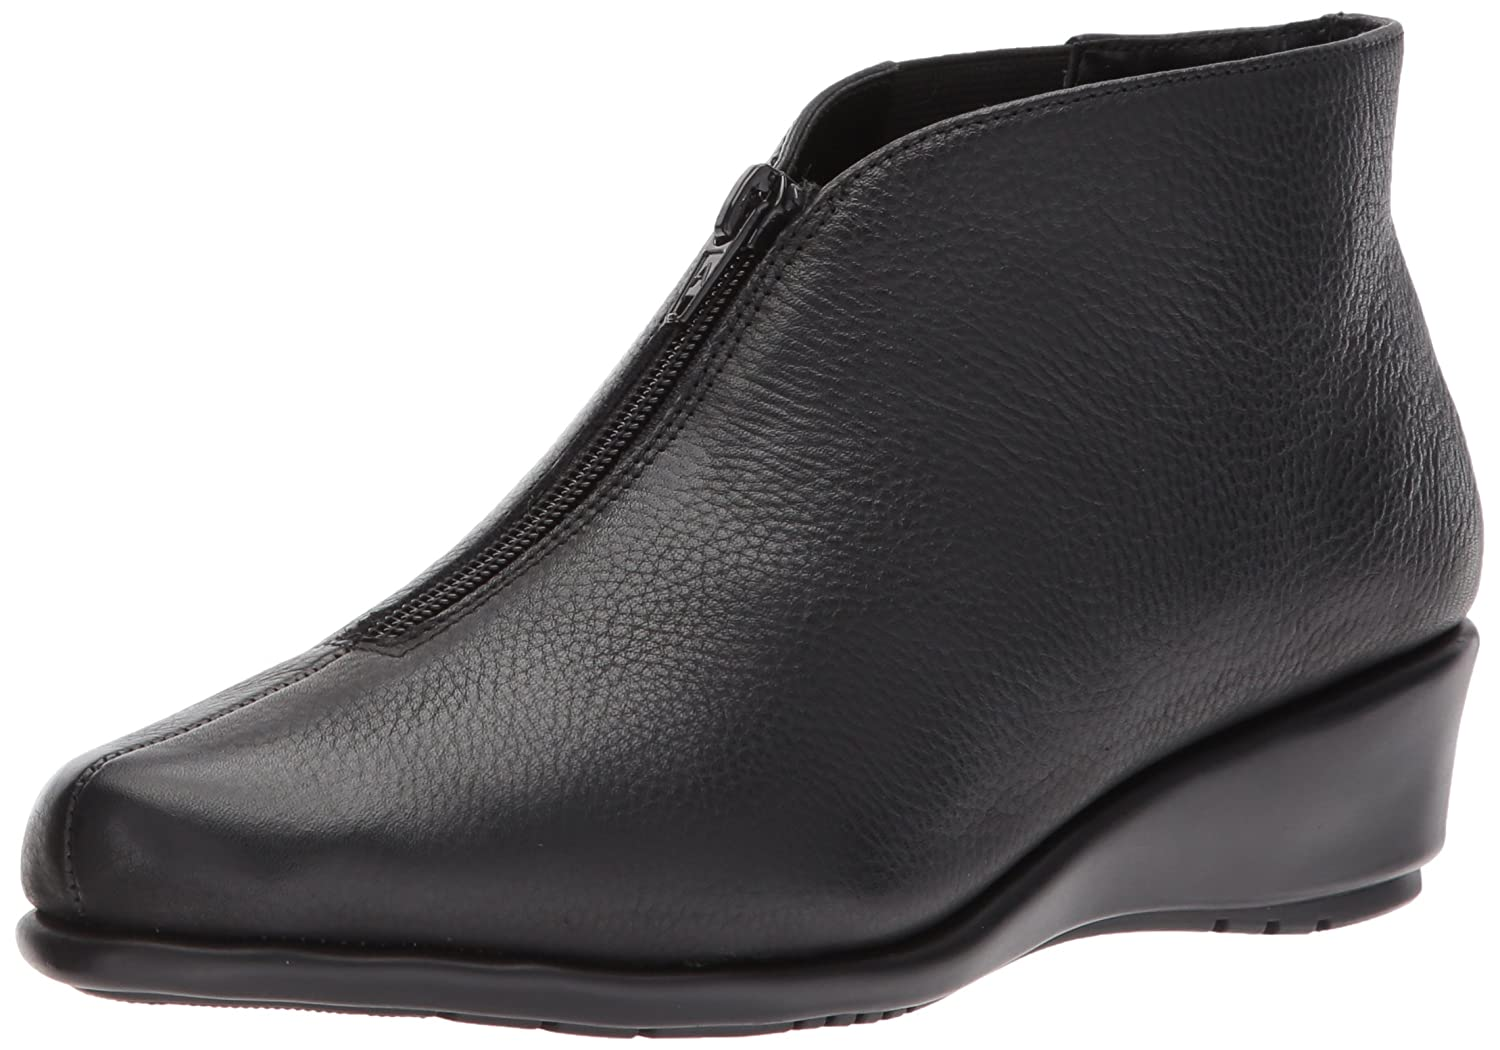 Aerosoles Women's Allowance Ankle Boot B06Y61TWN3 6.5 W US|Black Leather